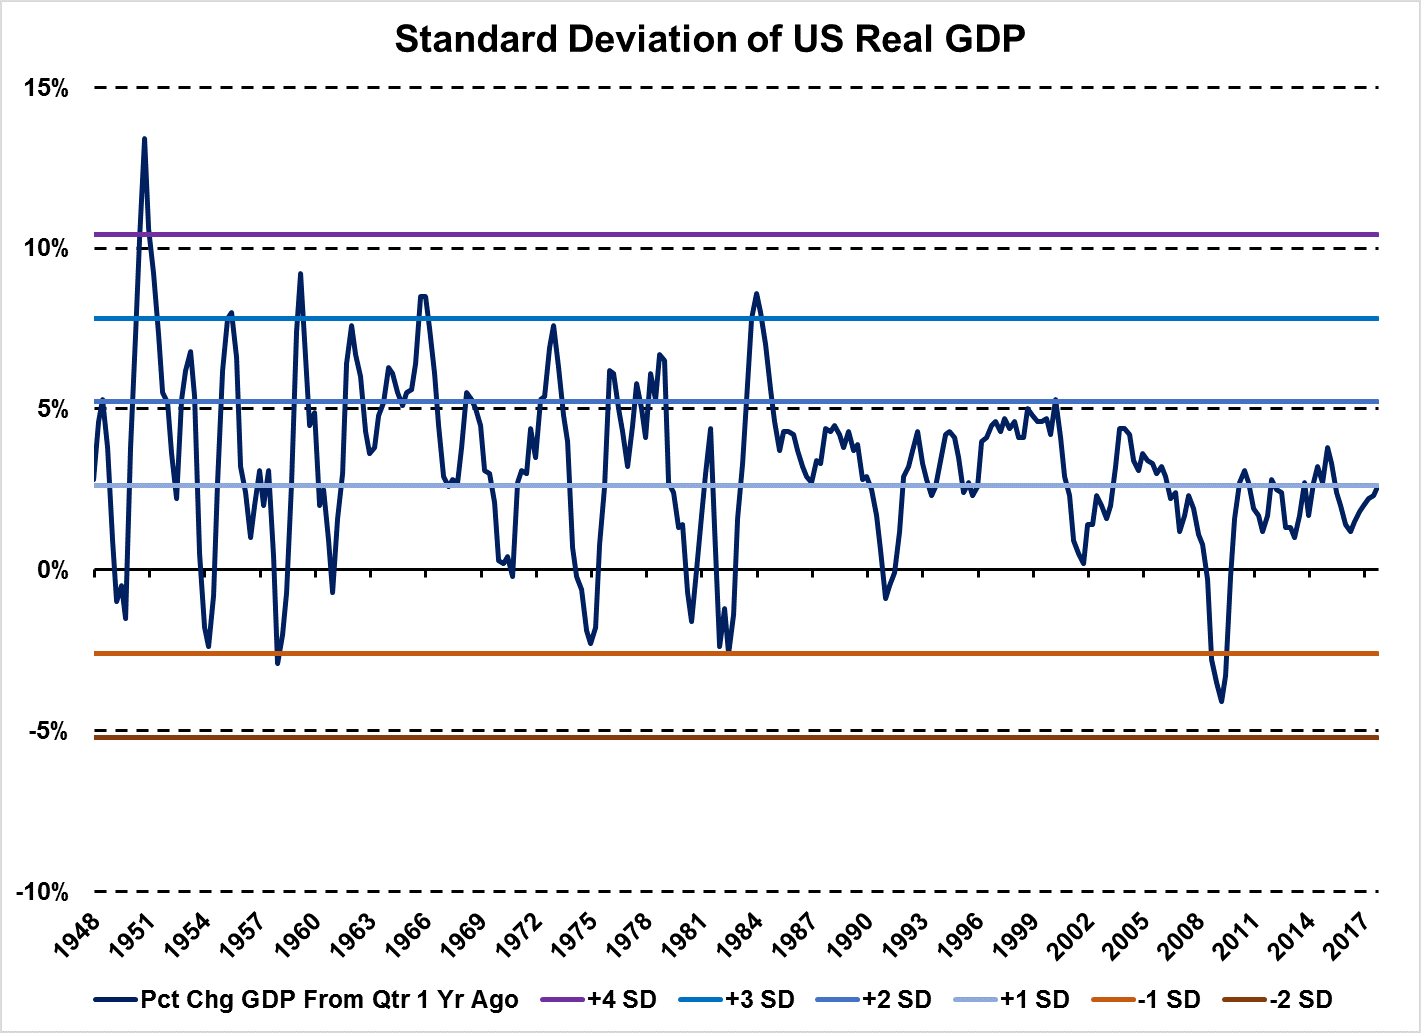 The annual percentage change of Quarterly US Real GDP data. Chart by Hanlon Research, Data from Federal Reserve Economic Database (FRED)